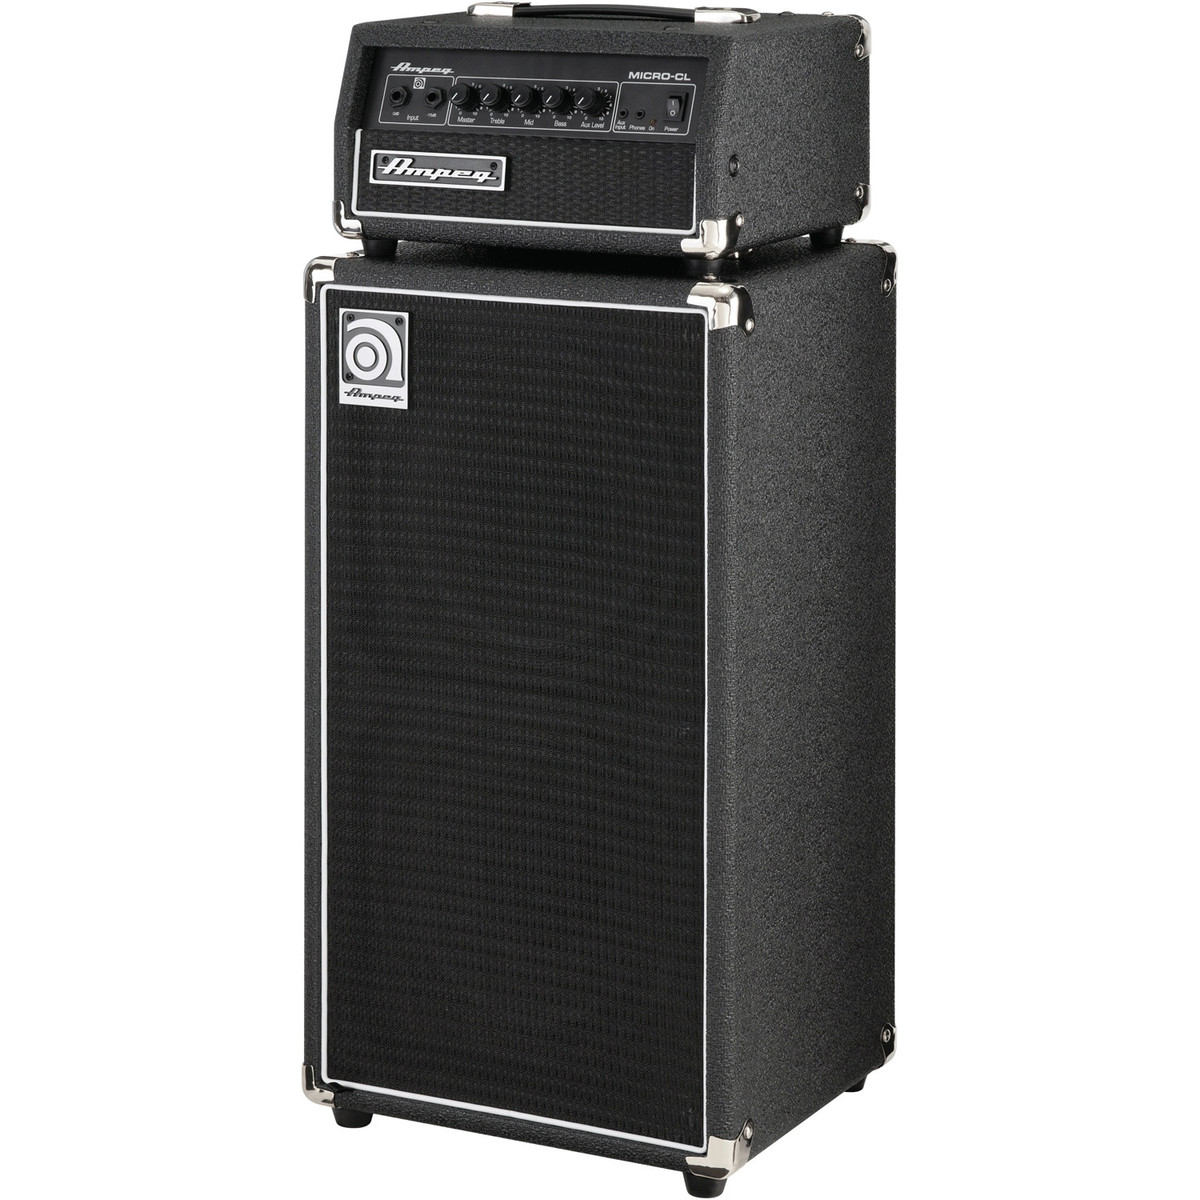 ampeg micro cl stack bass amp head and cab nearly new at gear4music. Black Bedroom Furniture Sets. Home Design Ideas